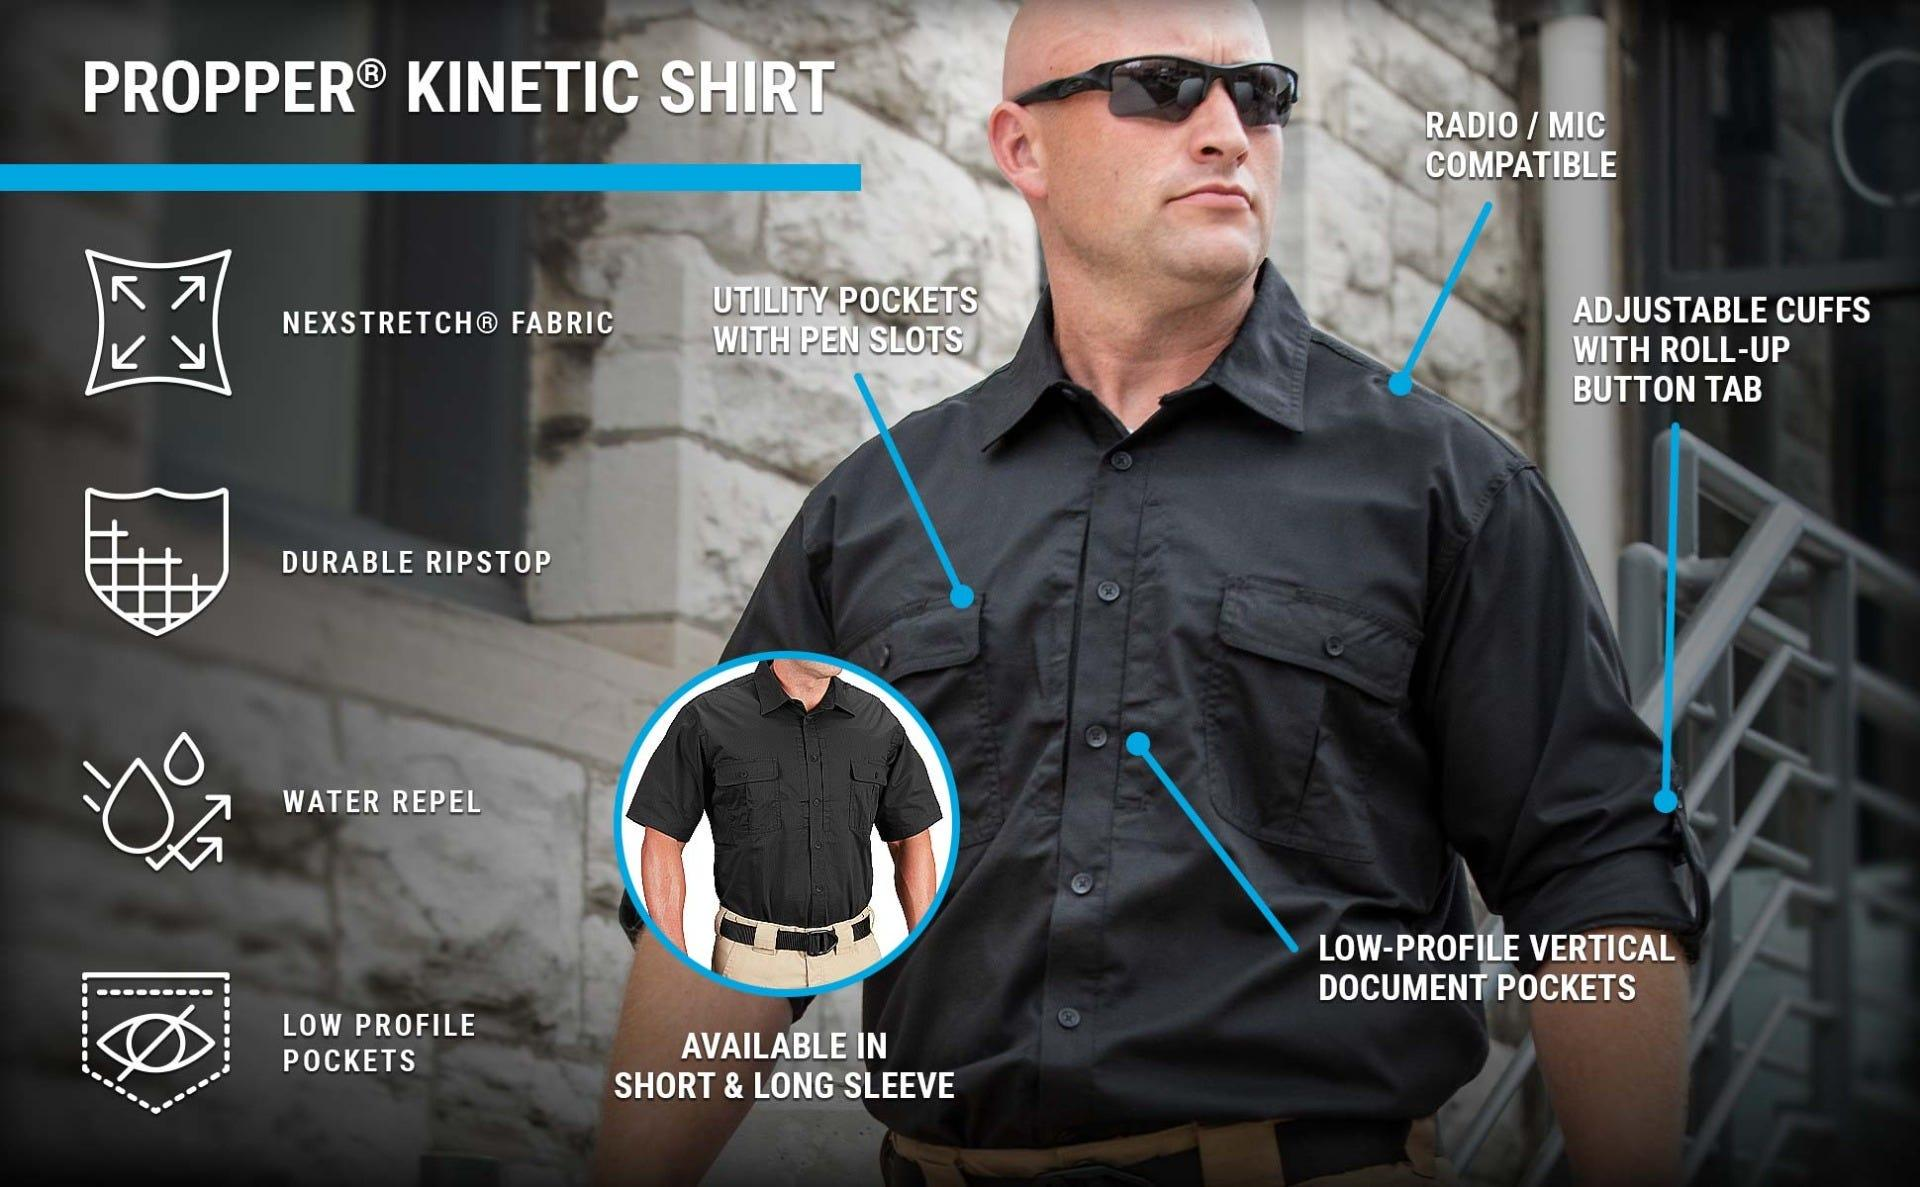 Black tactical button down shirt with rolled sleeves offering concealed document pockets